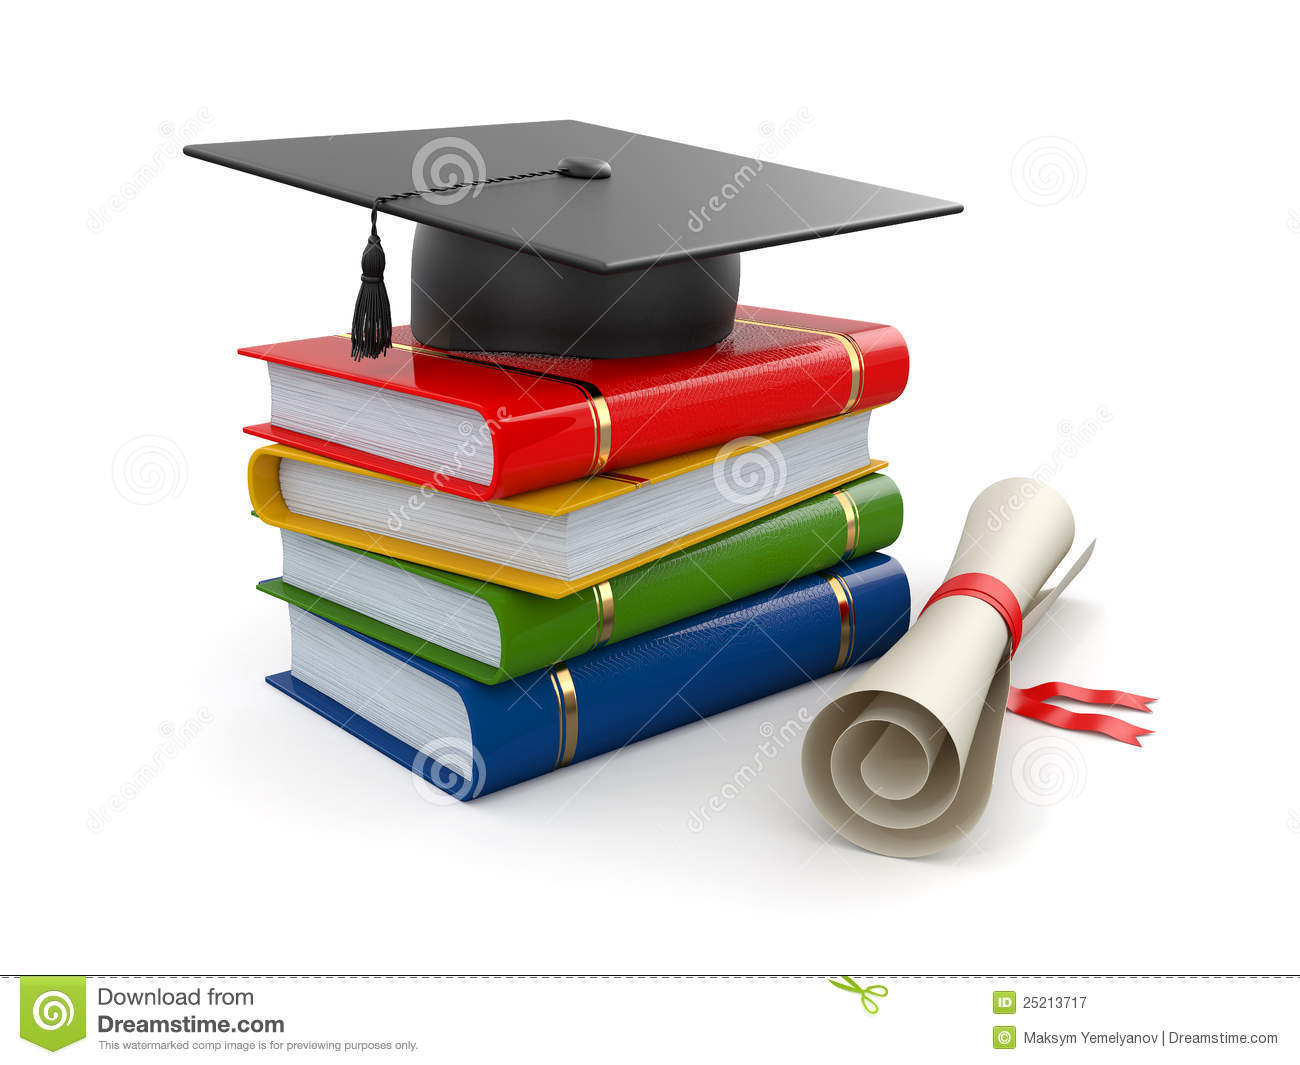 House Plans Blueprints Graduation Mortarboard Diploma And Books 3d Royalty